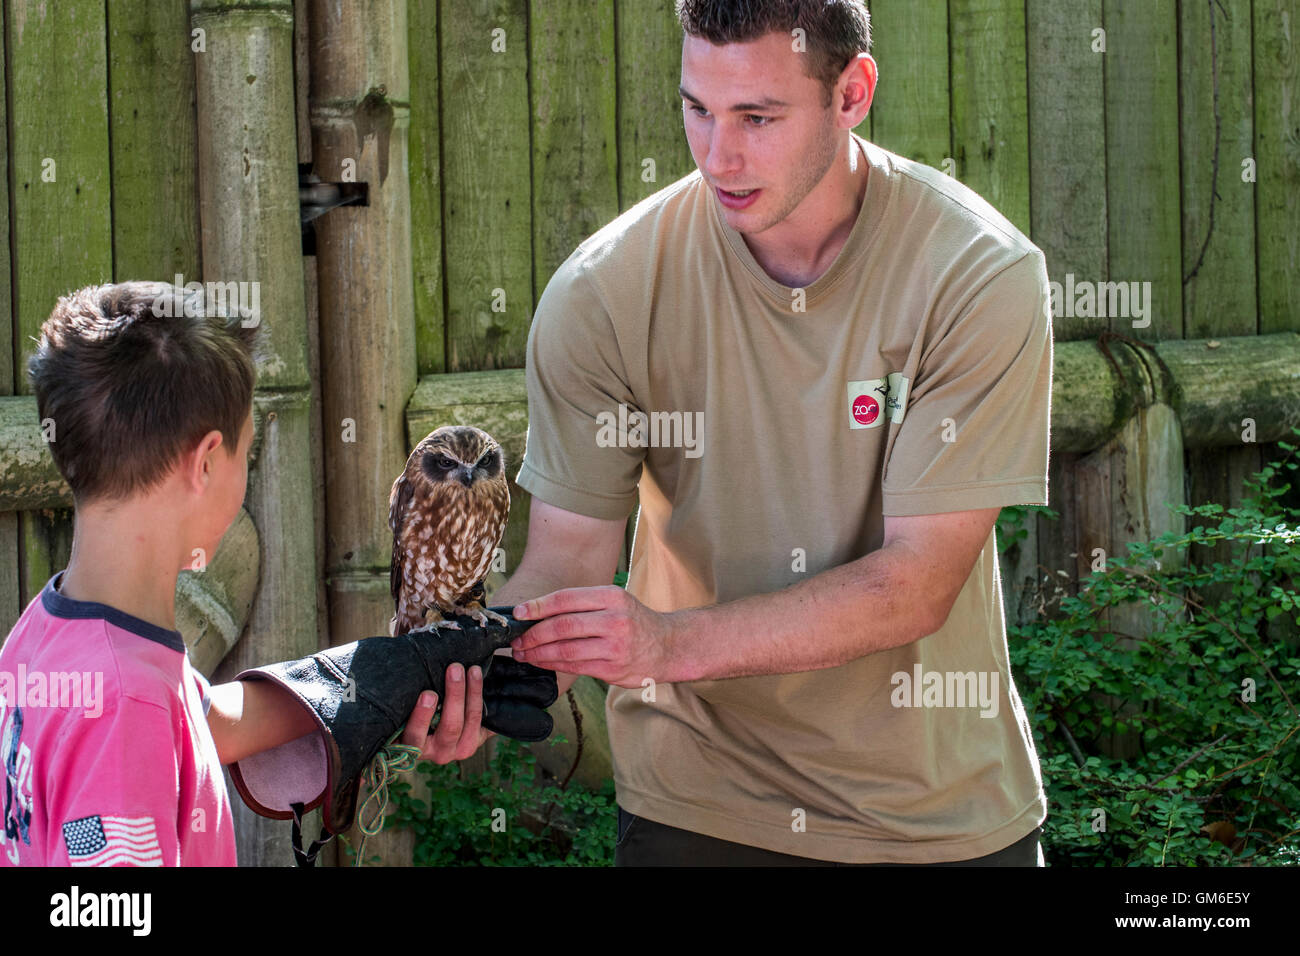 Zookeeper placing owl on hand of child in the Planckendael Zoo, Belgium - Stock Image